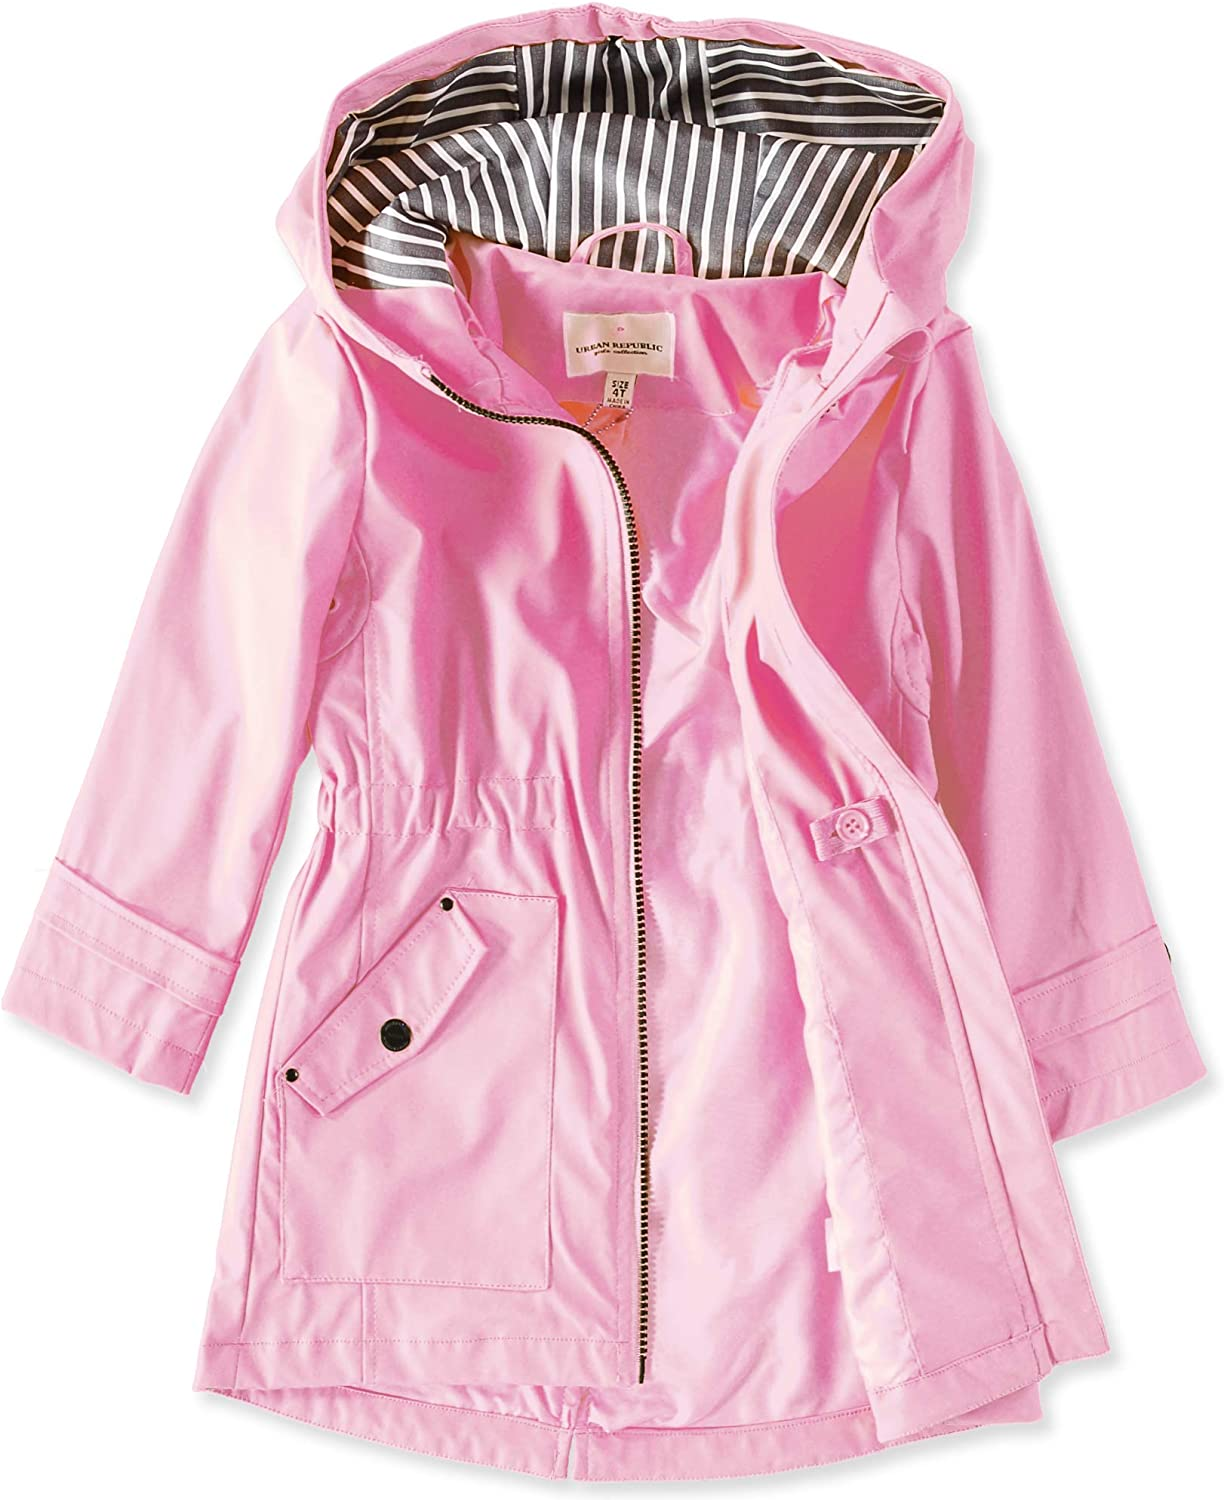 Urban Republic Girls Anorak Raincoat Water Resistant Hooded Rain Jacket